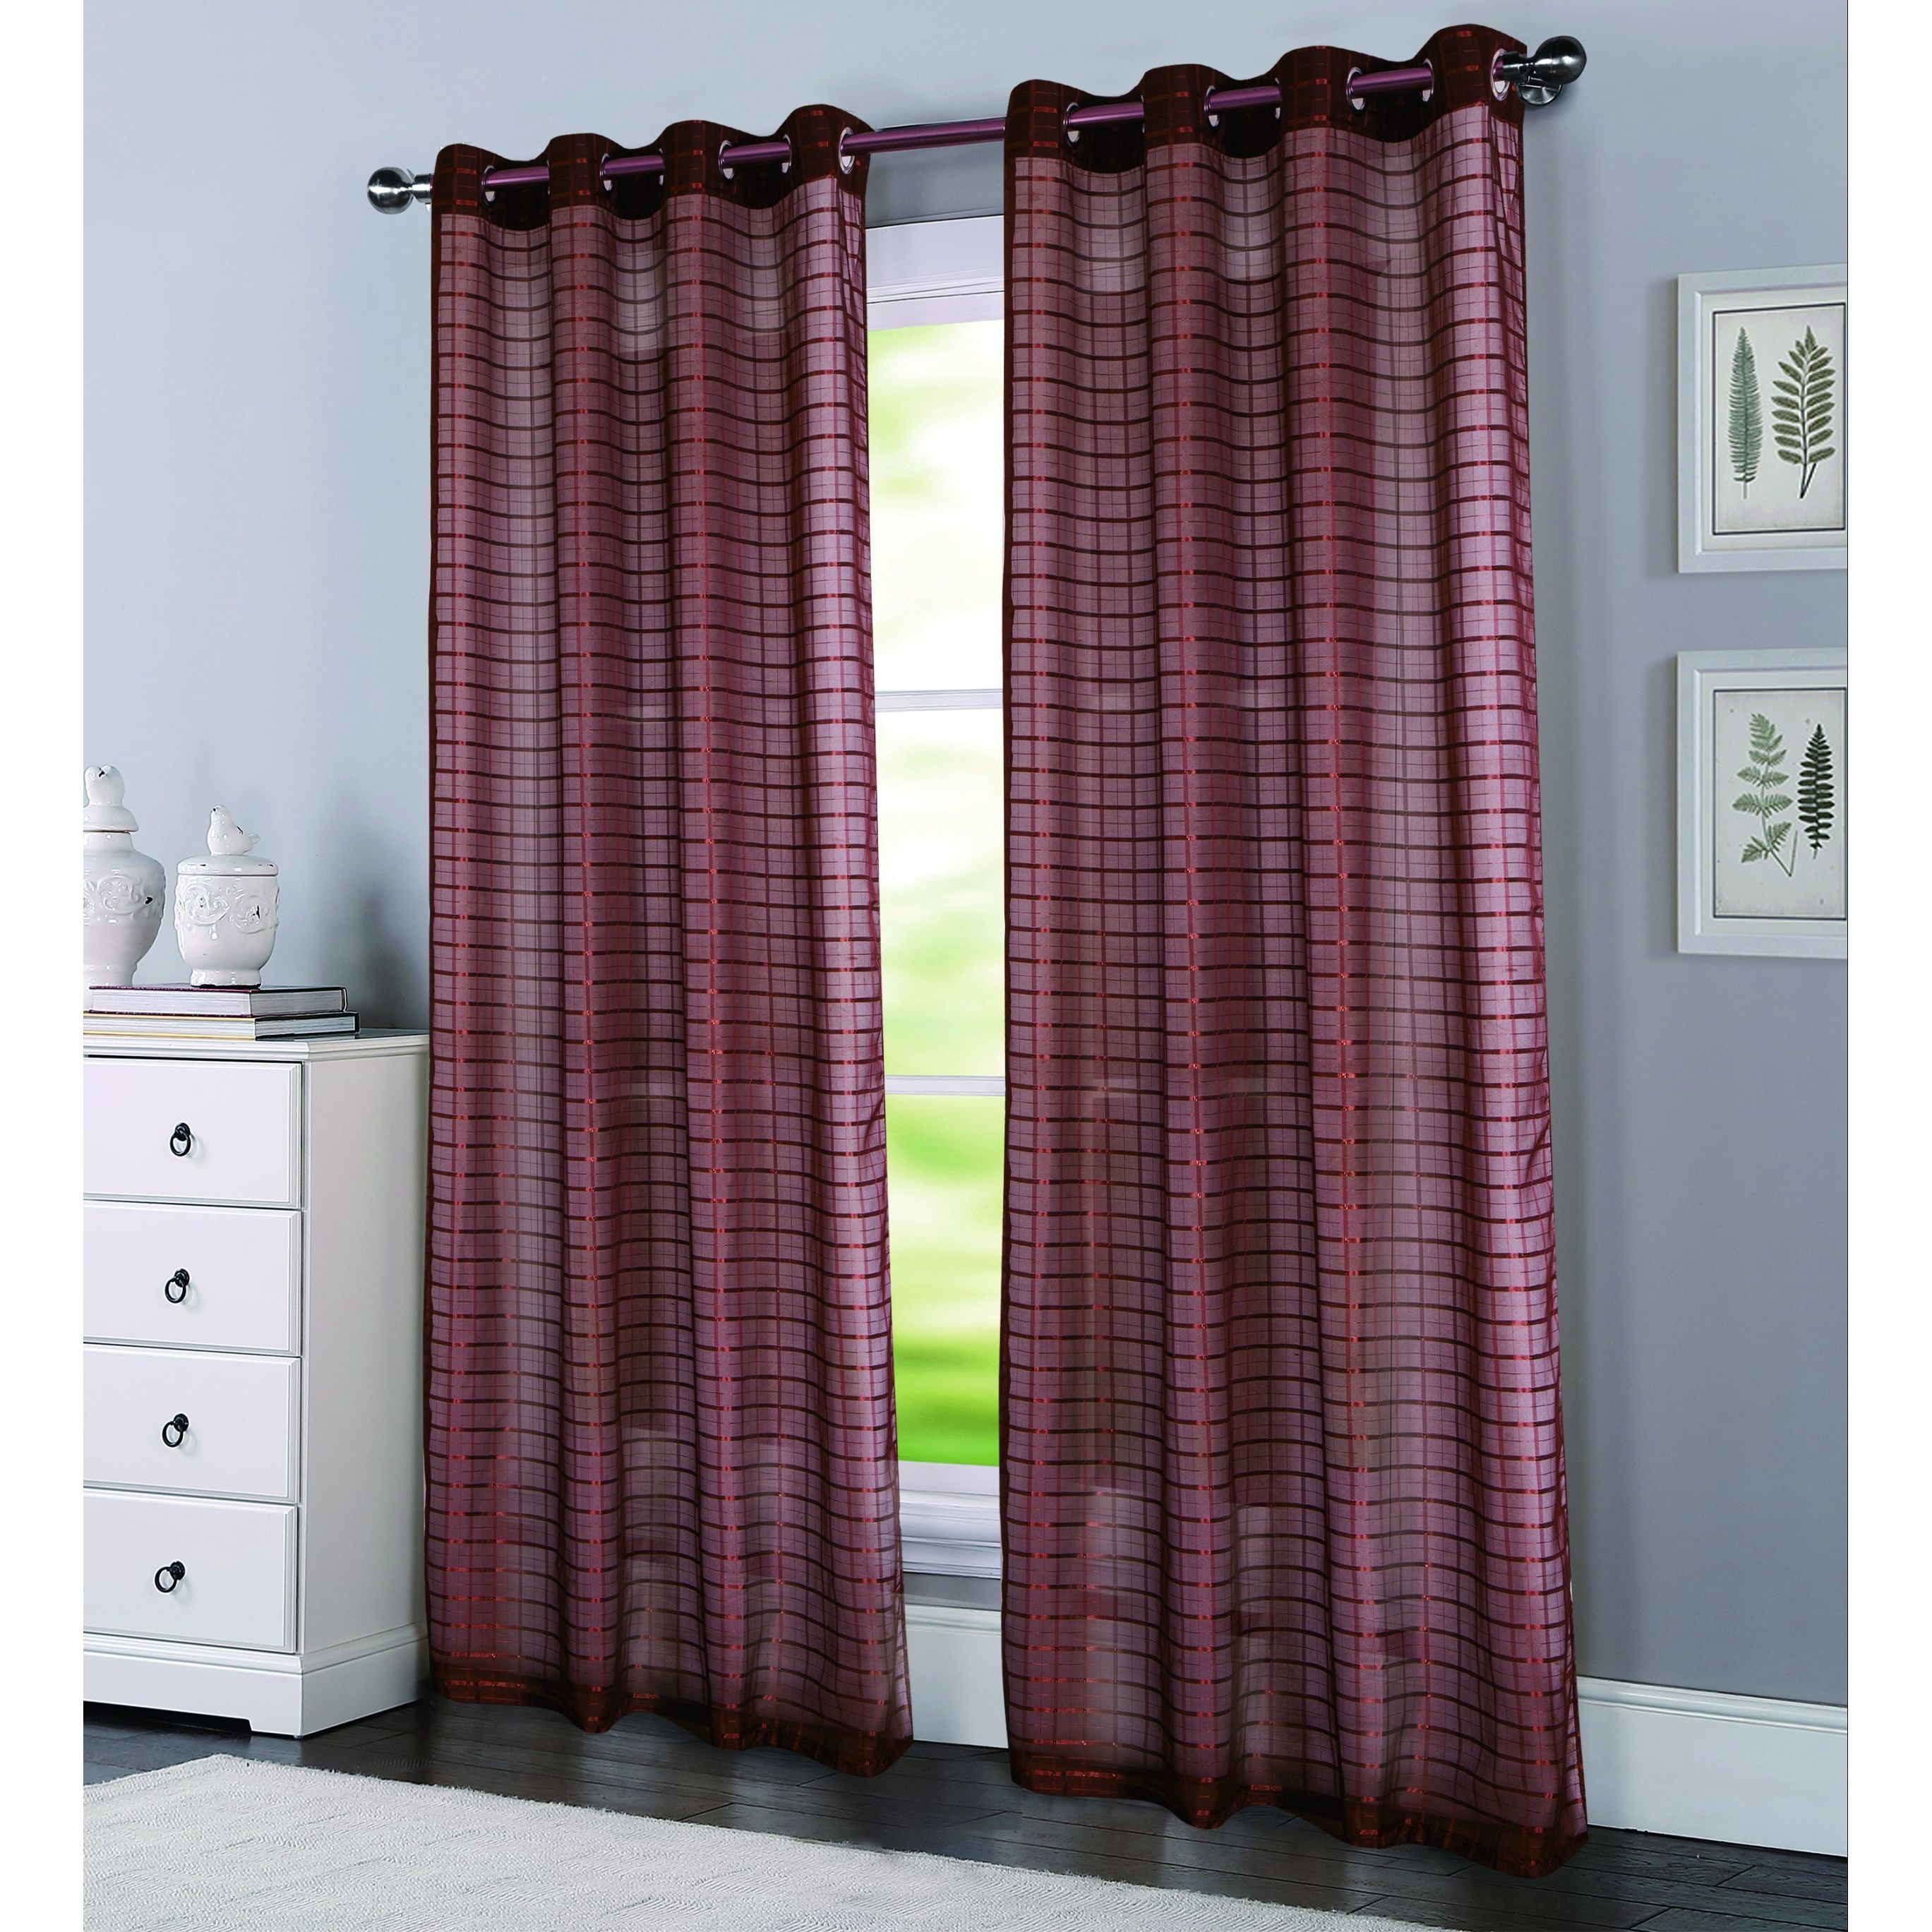 bluelight for blue curtain picture of sheer size inch full light bedroomlight panels fearsome inspirations curtains searslight at